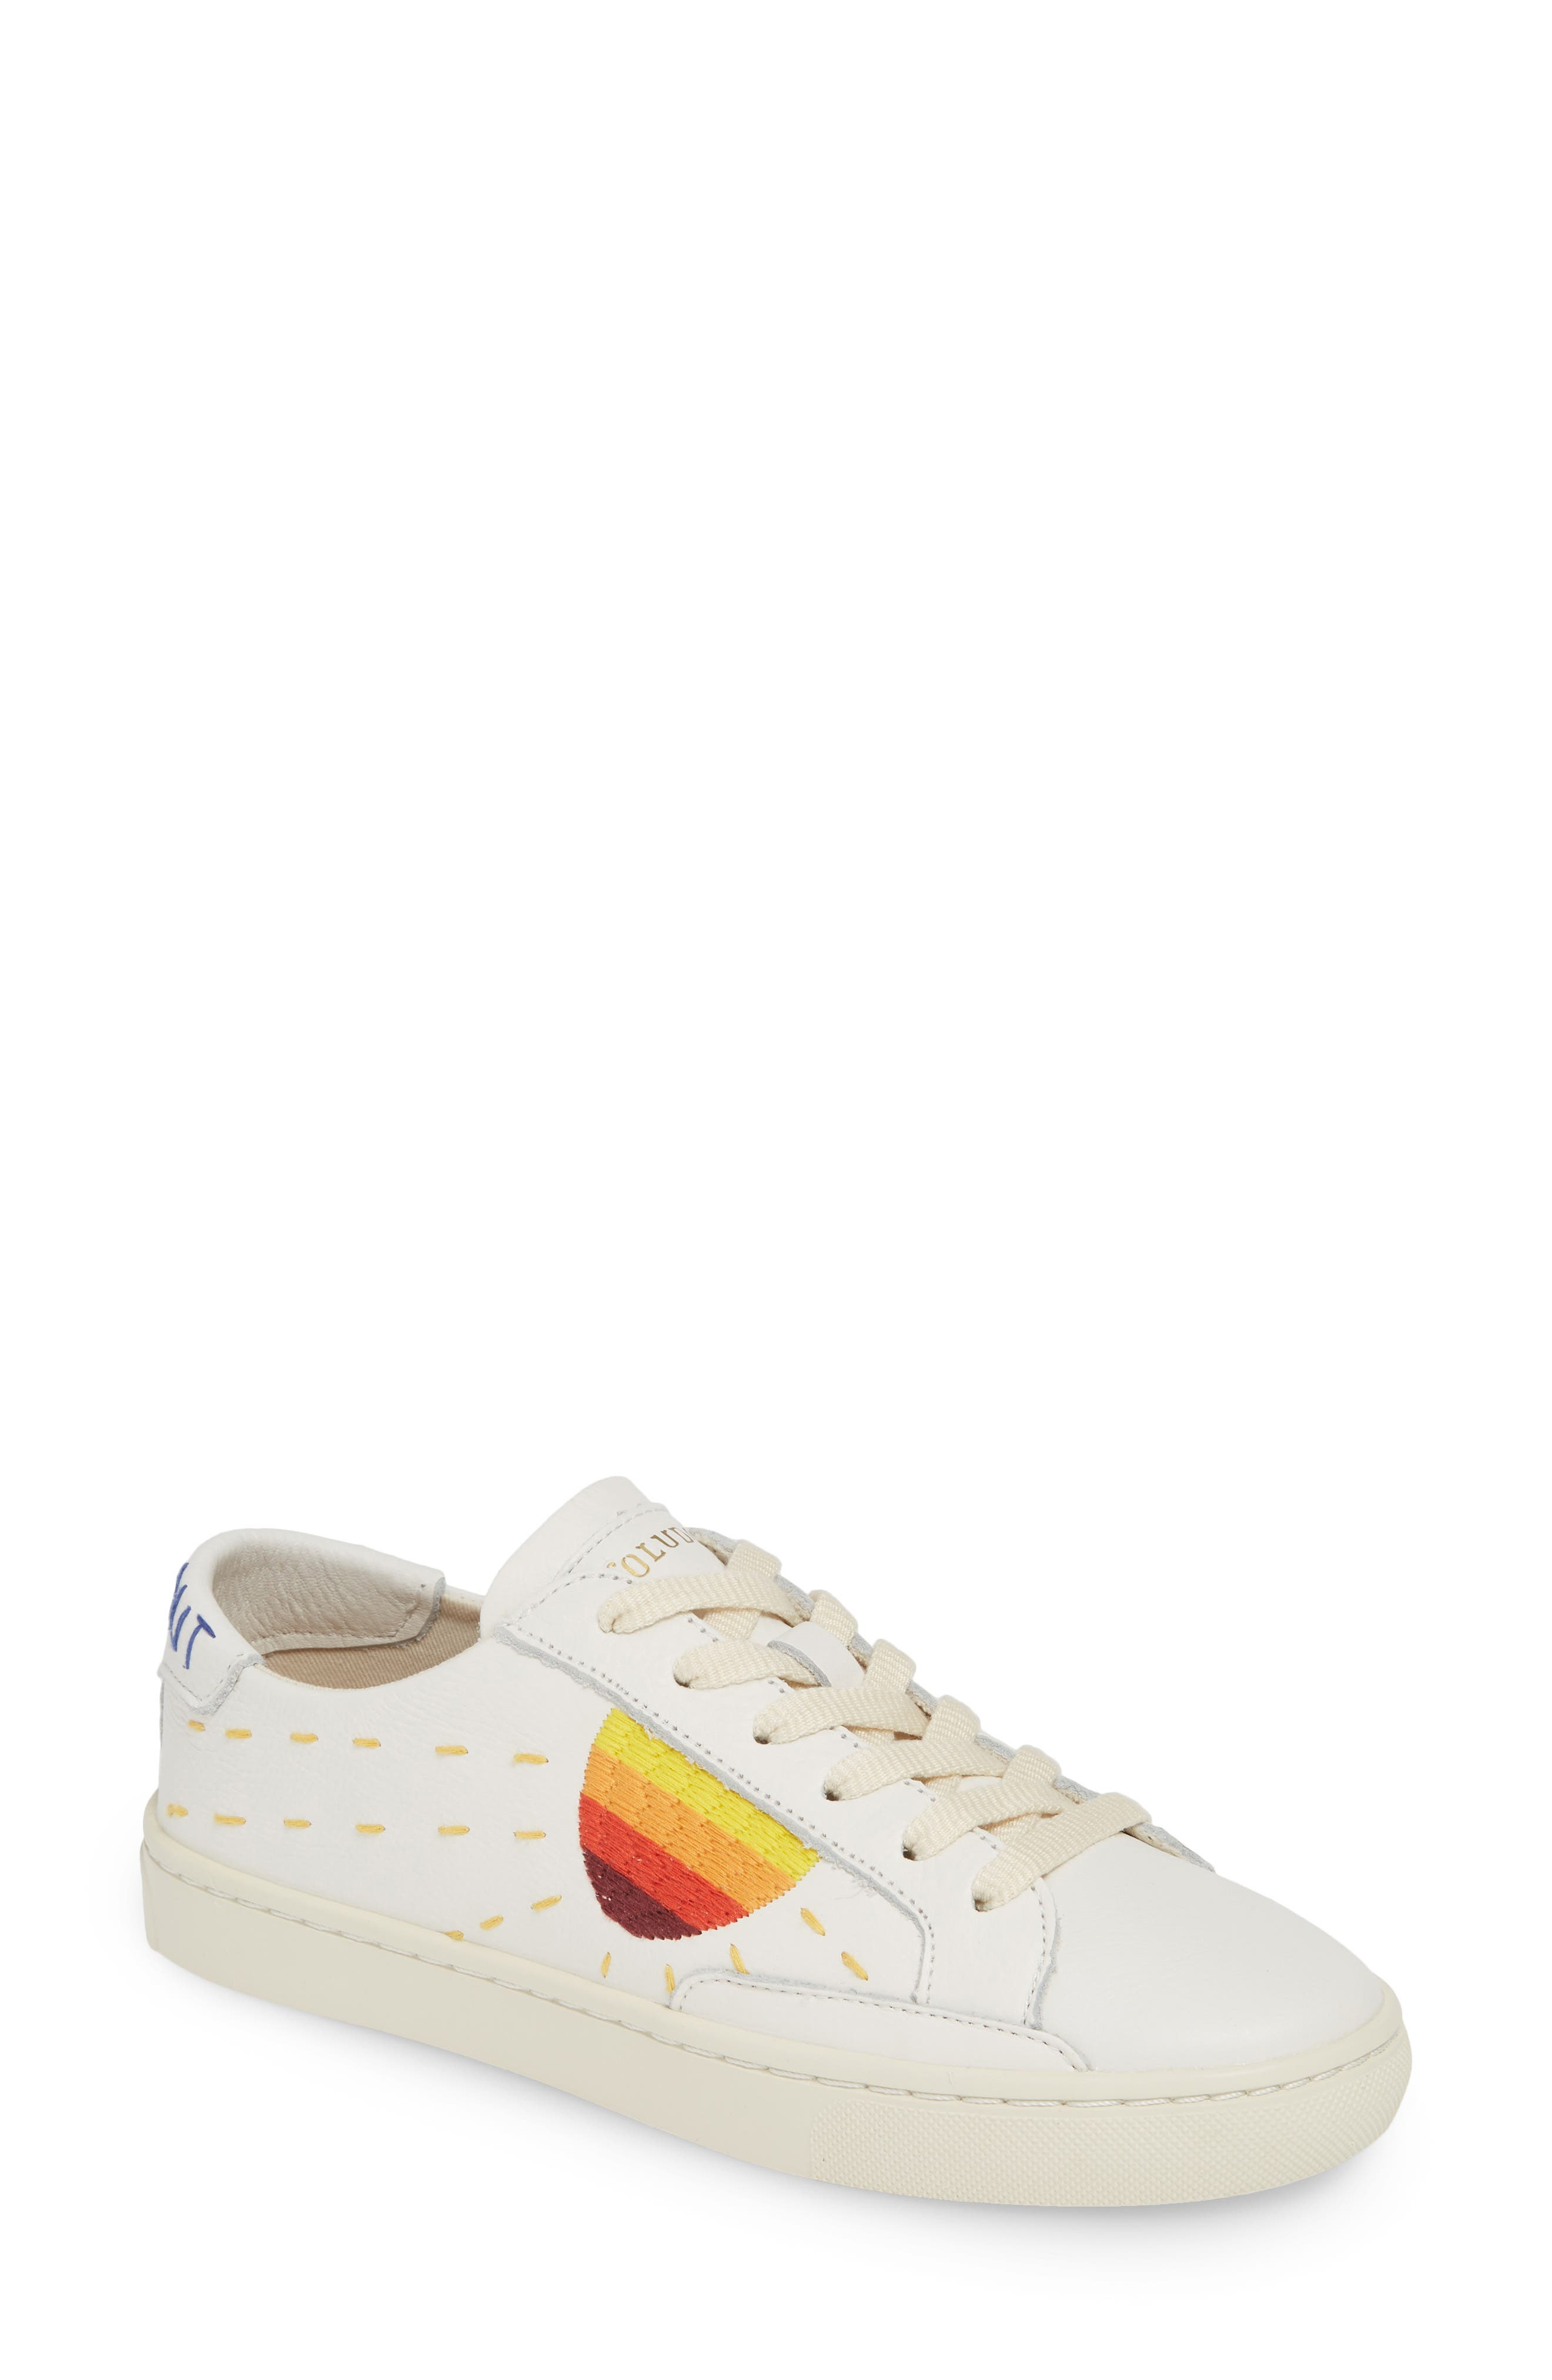 Peace Out Sun Sneaker by Soludos